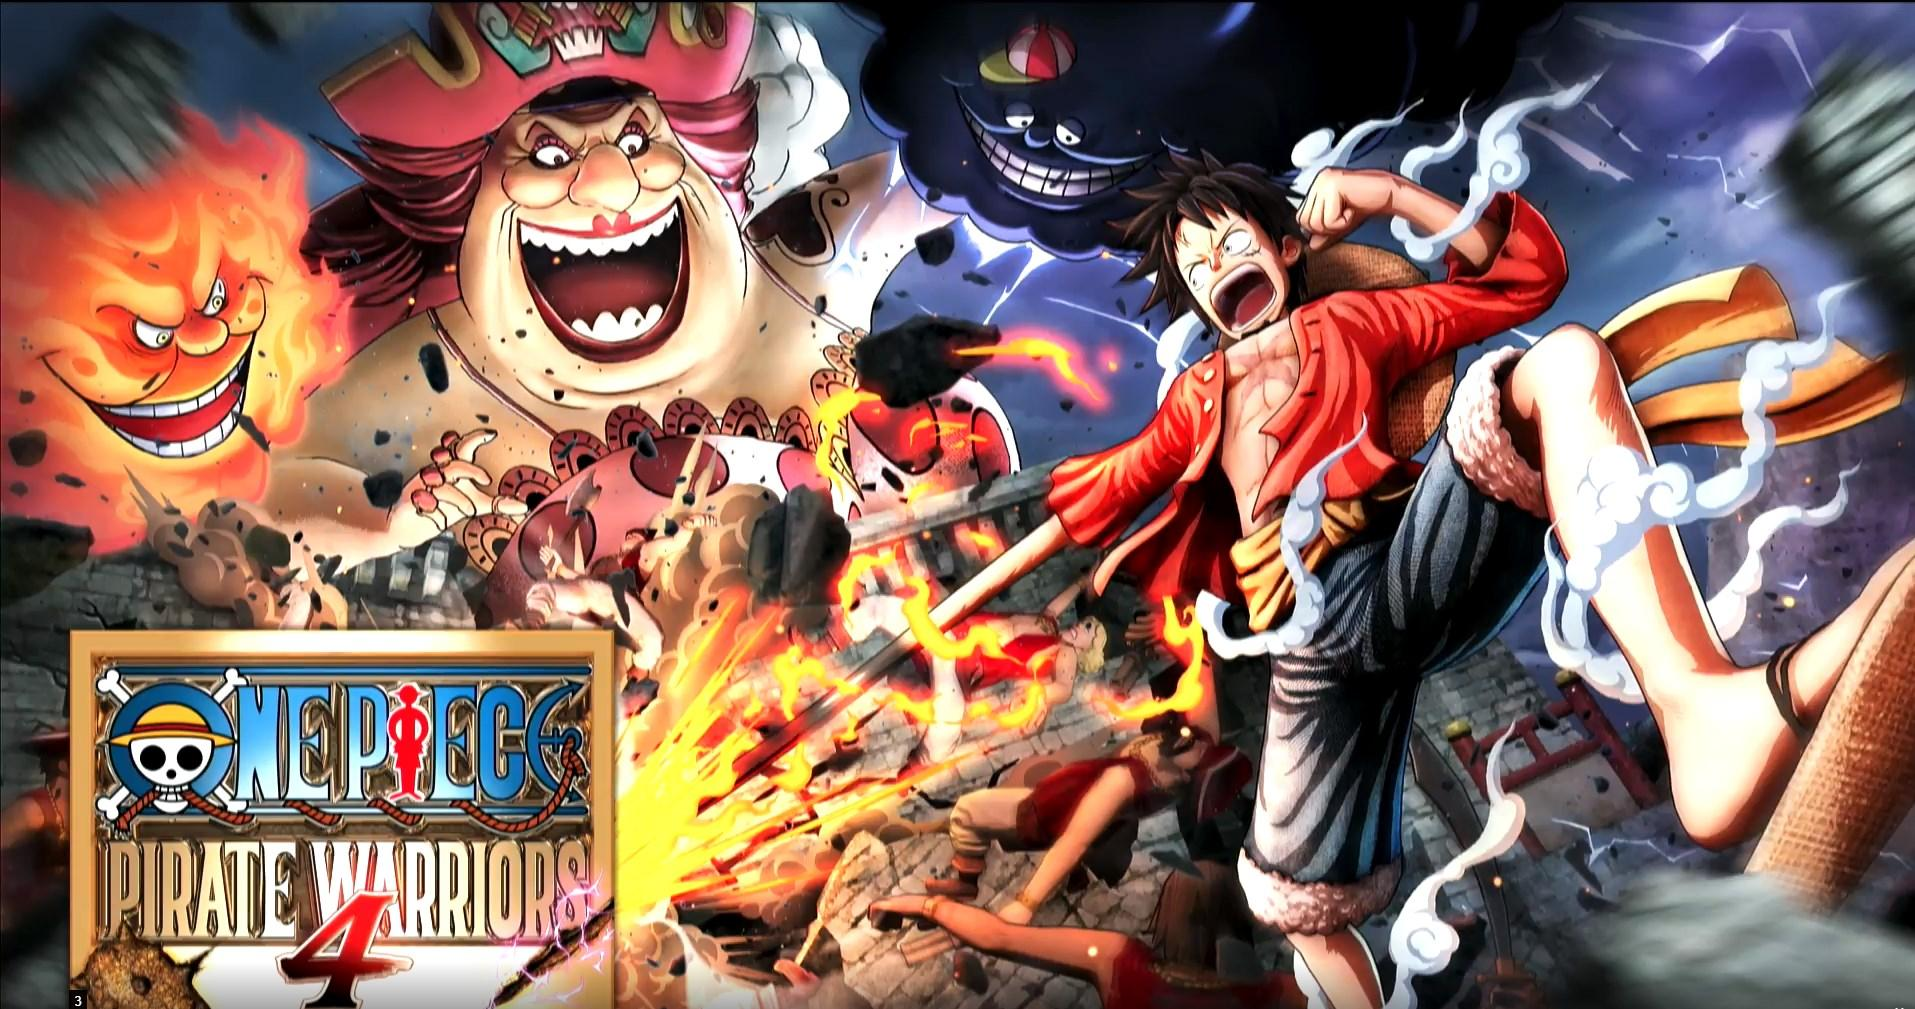 One-Piece-Pirate-Warriors-4_Scrn060519.jpg